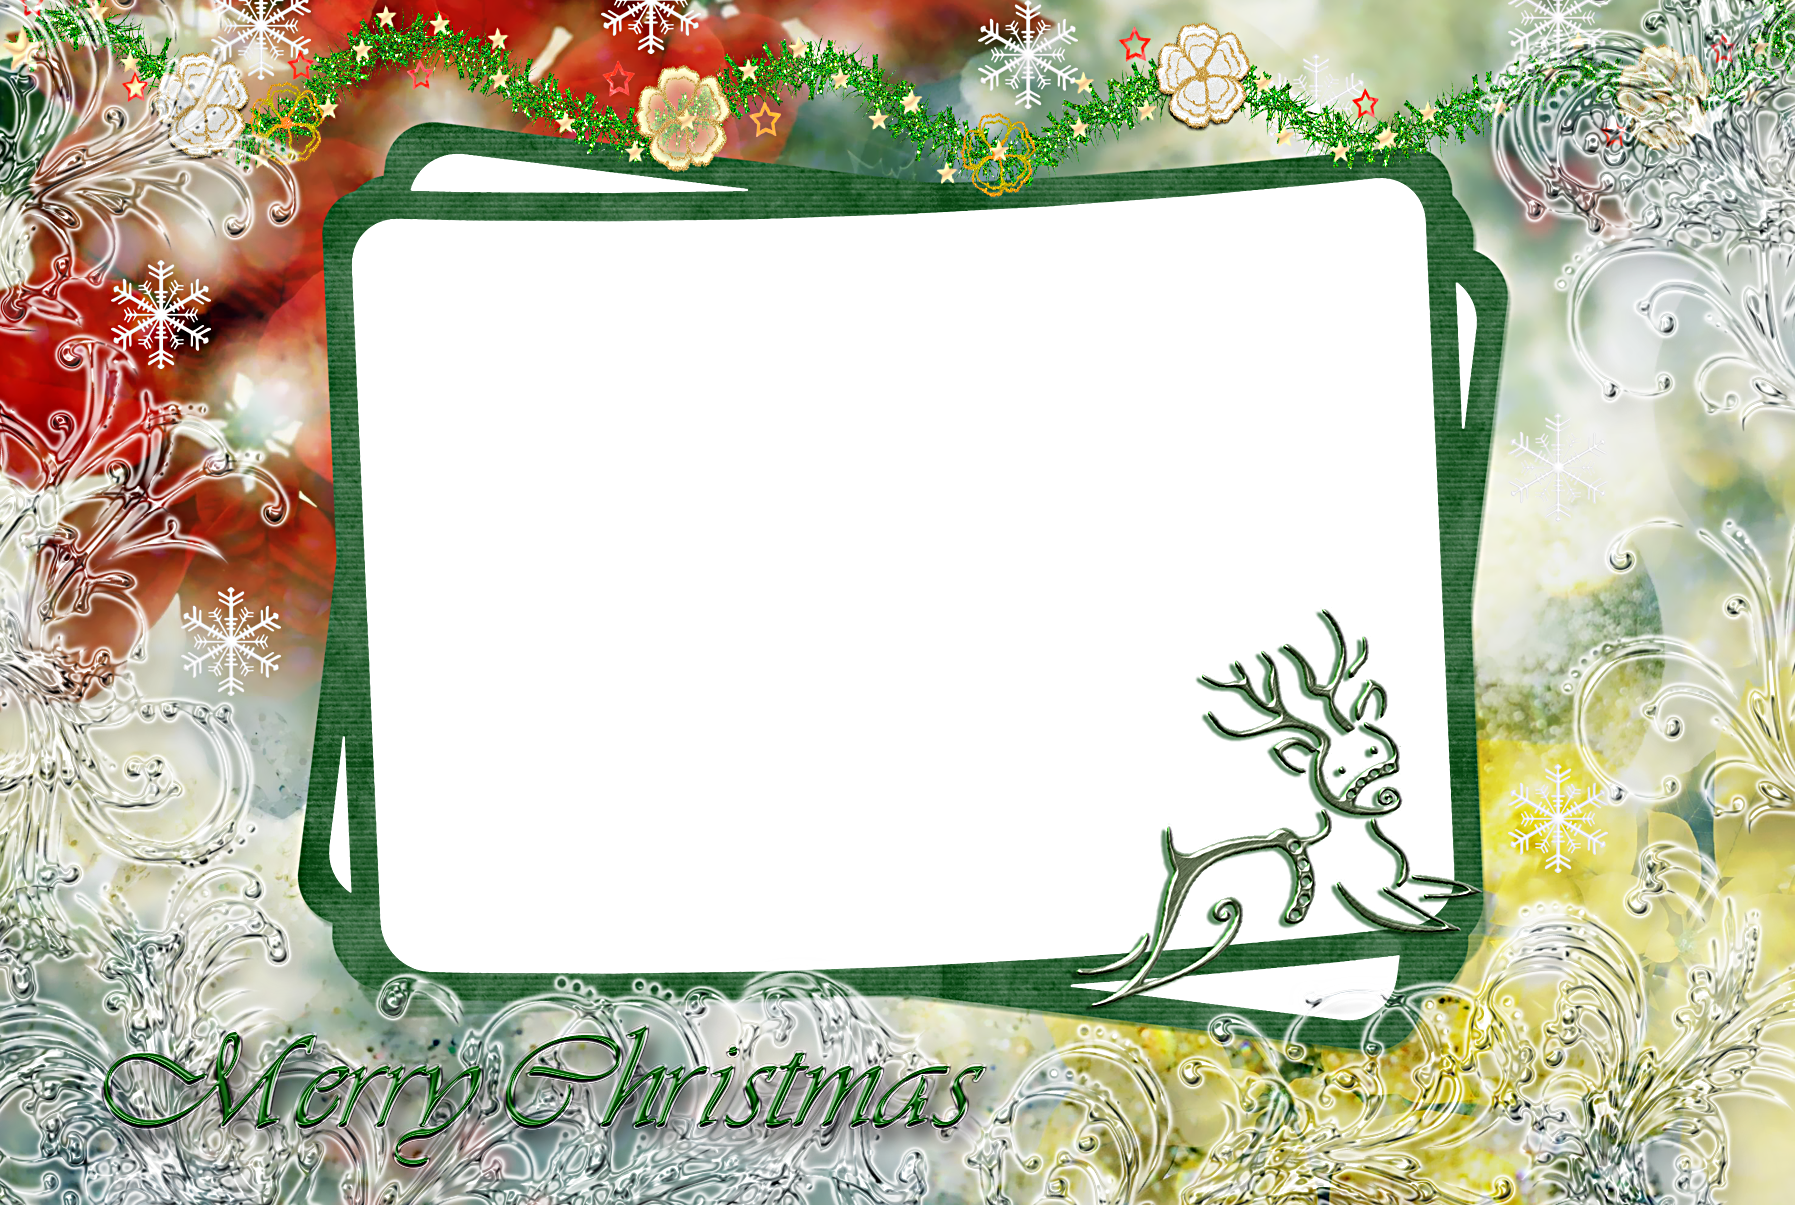 15 Free Christmas Photoshop Frame Templates Images